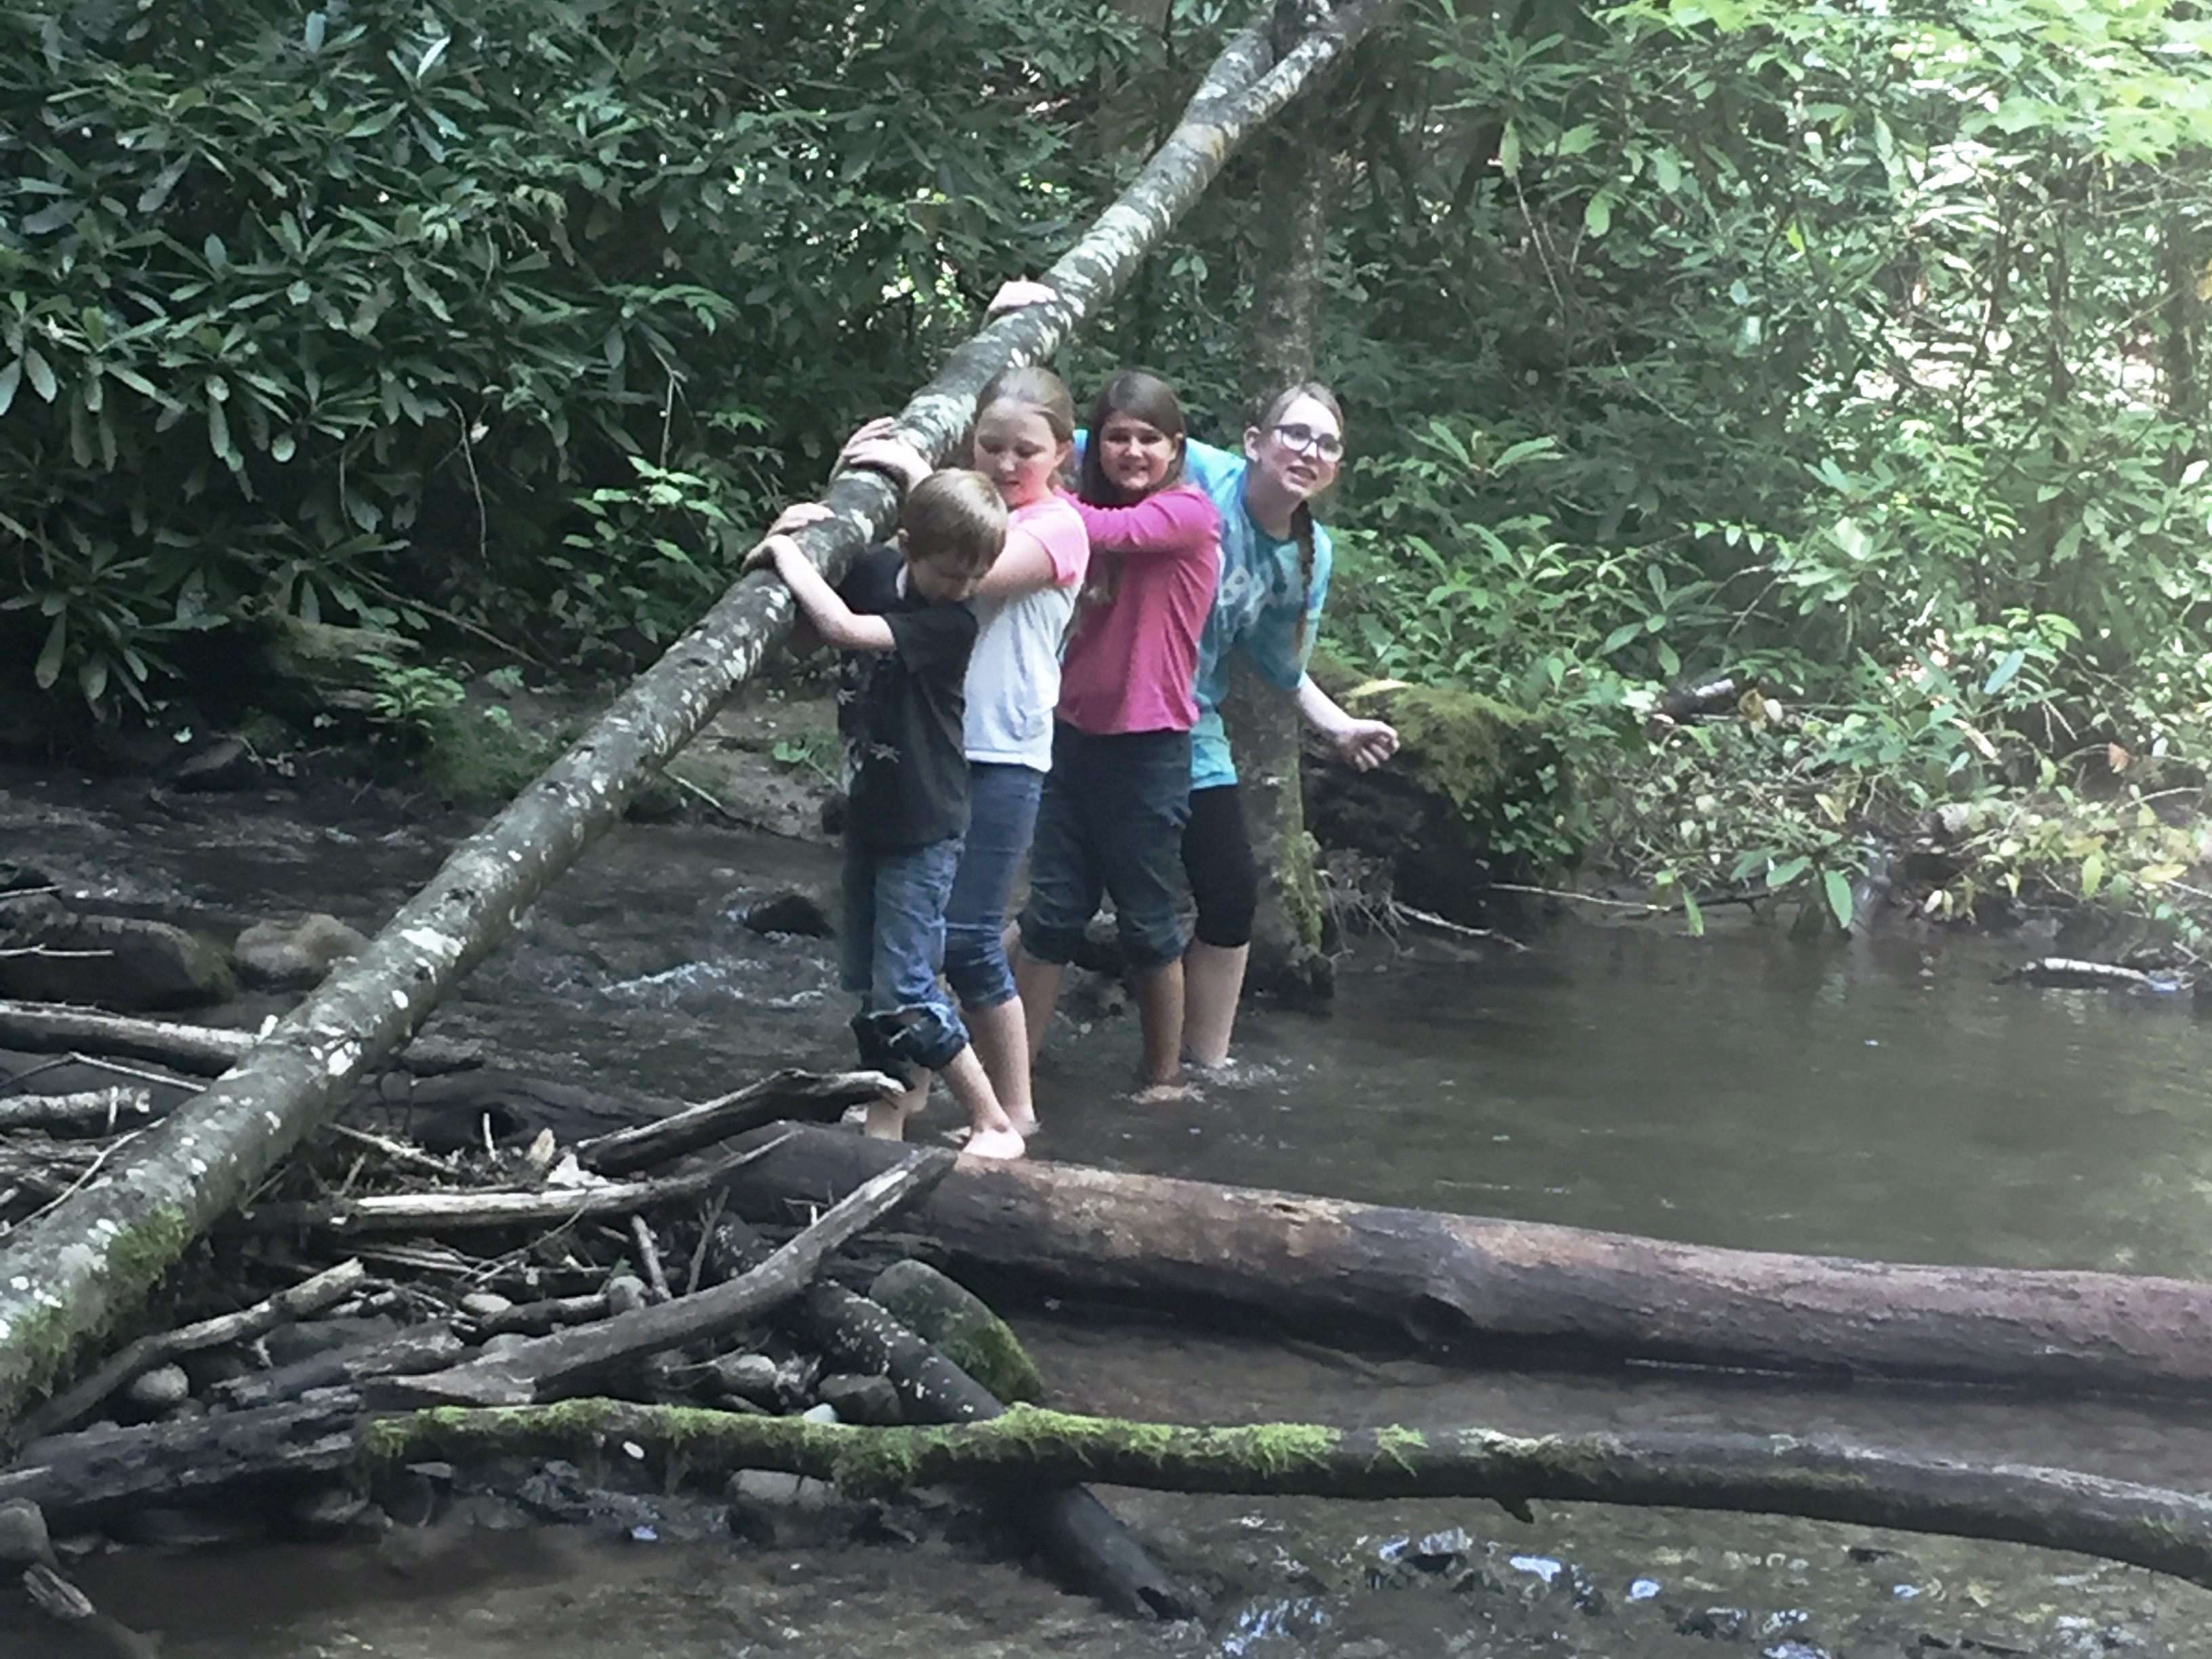 Playing in the creek with cousins.